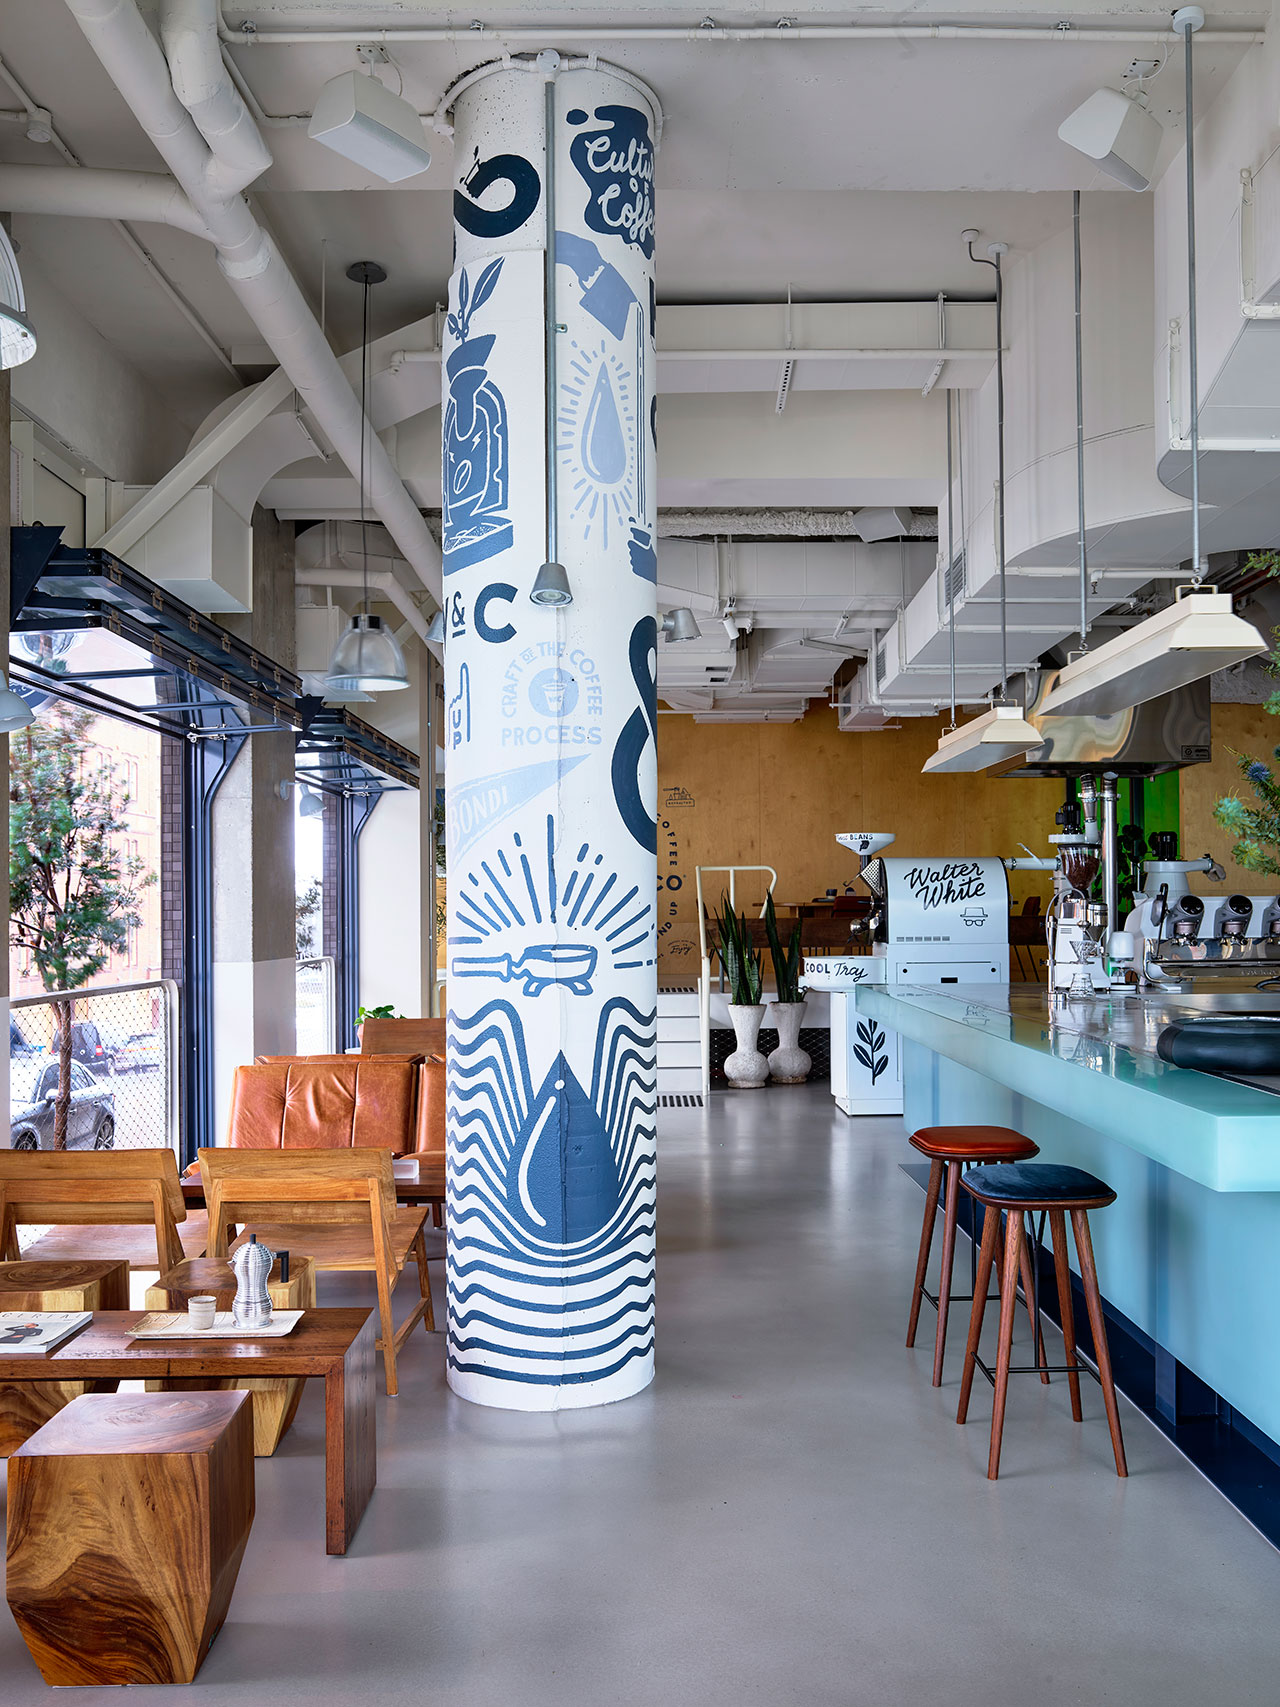 Will & Co Bondi Beach by Alexander &CO. Photo by Anson Smart.